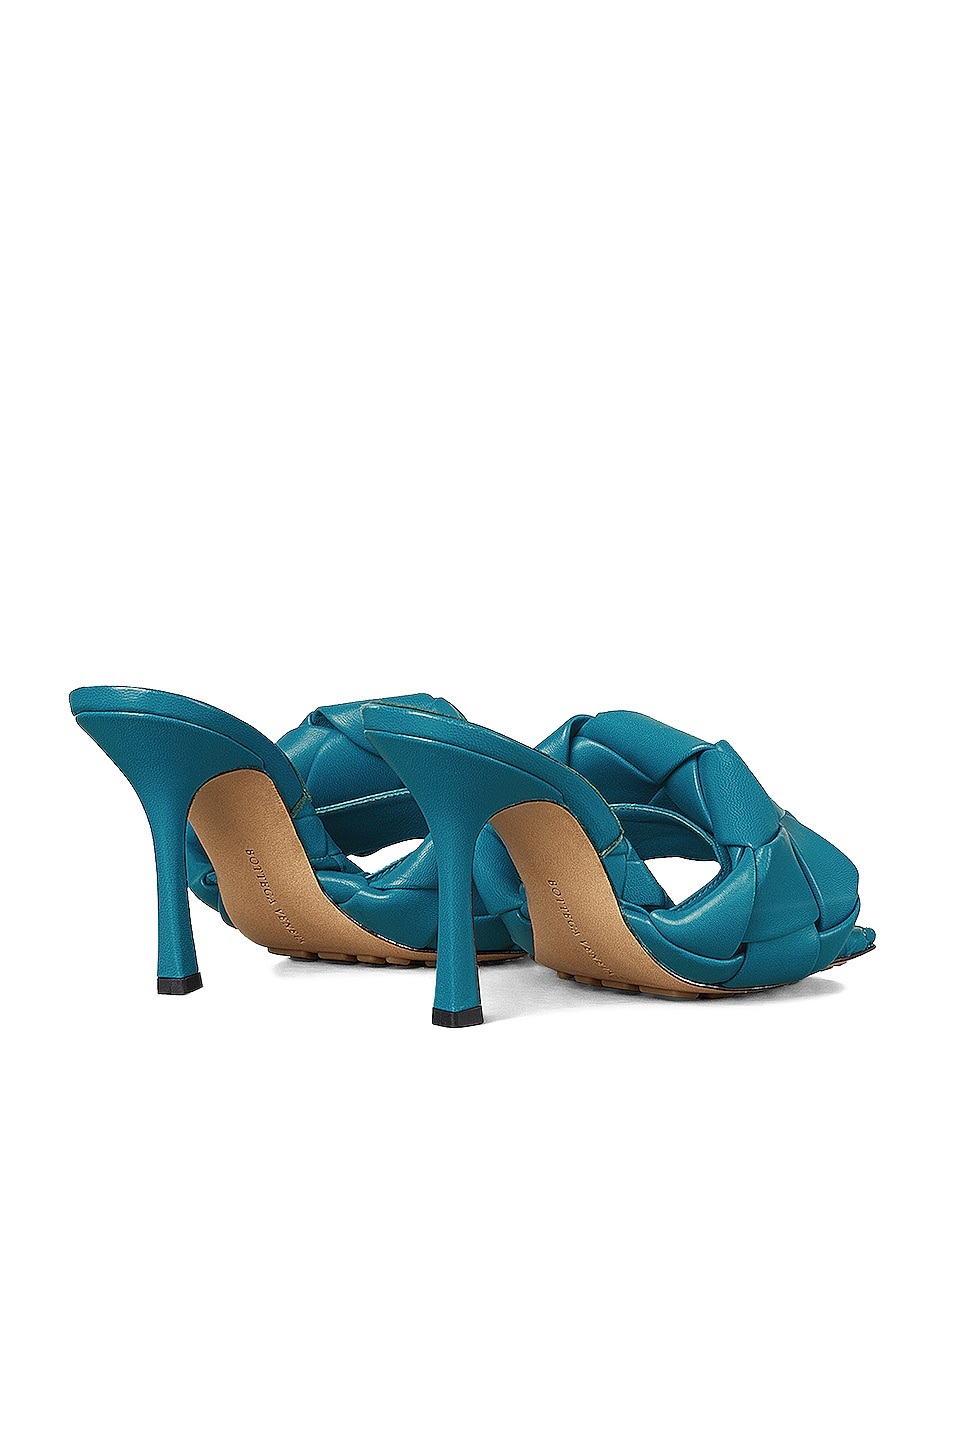 Image 3 of Bottega Veneta Lido Leather Woven Sandals in Vintage Blue